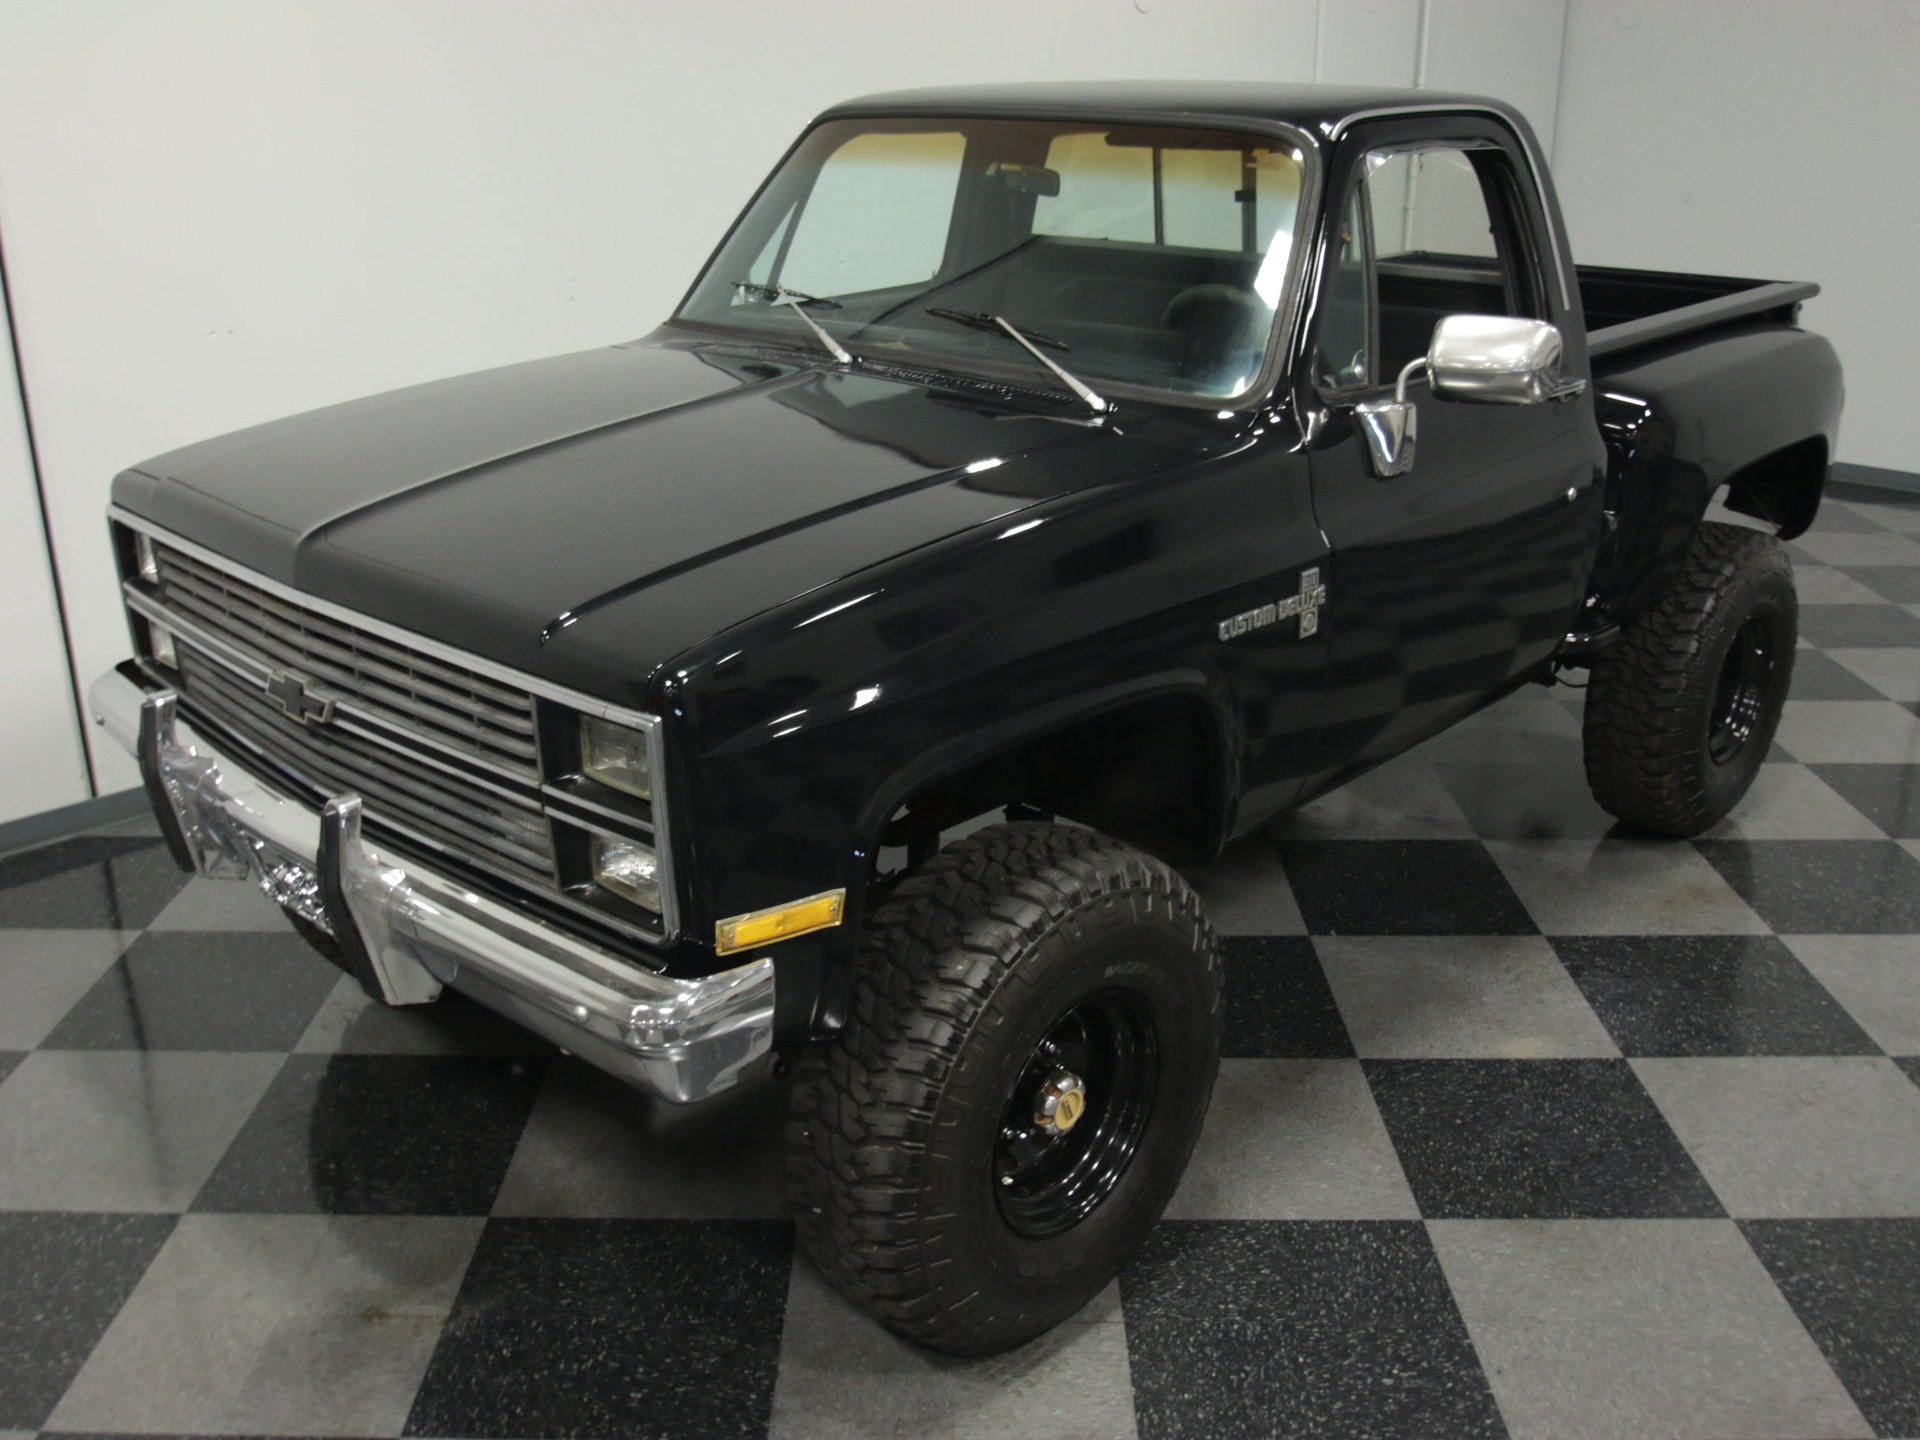 1976 Chevrolet K 10 Streetside Classics The Nations Trusted Chevy Truck 4x4 View 360